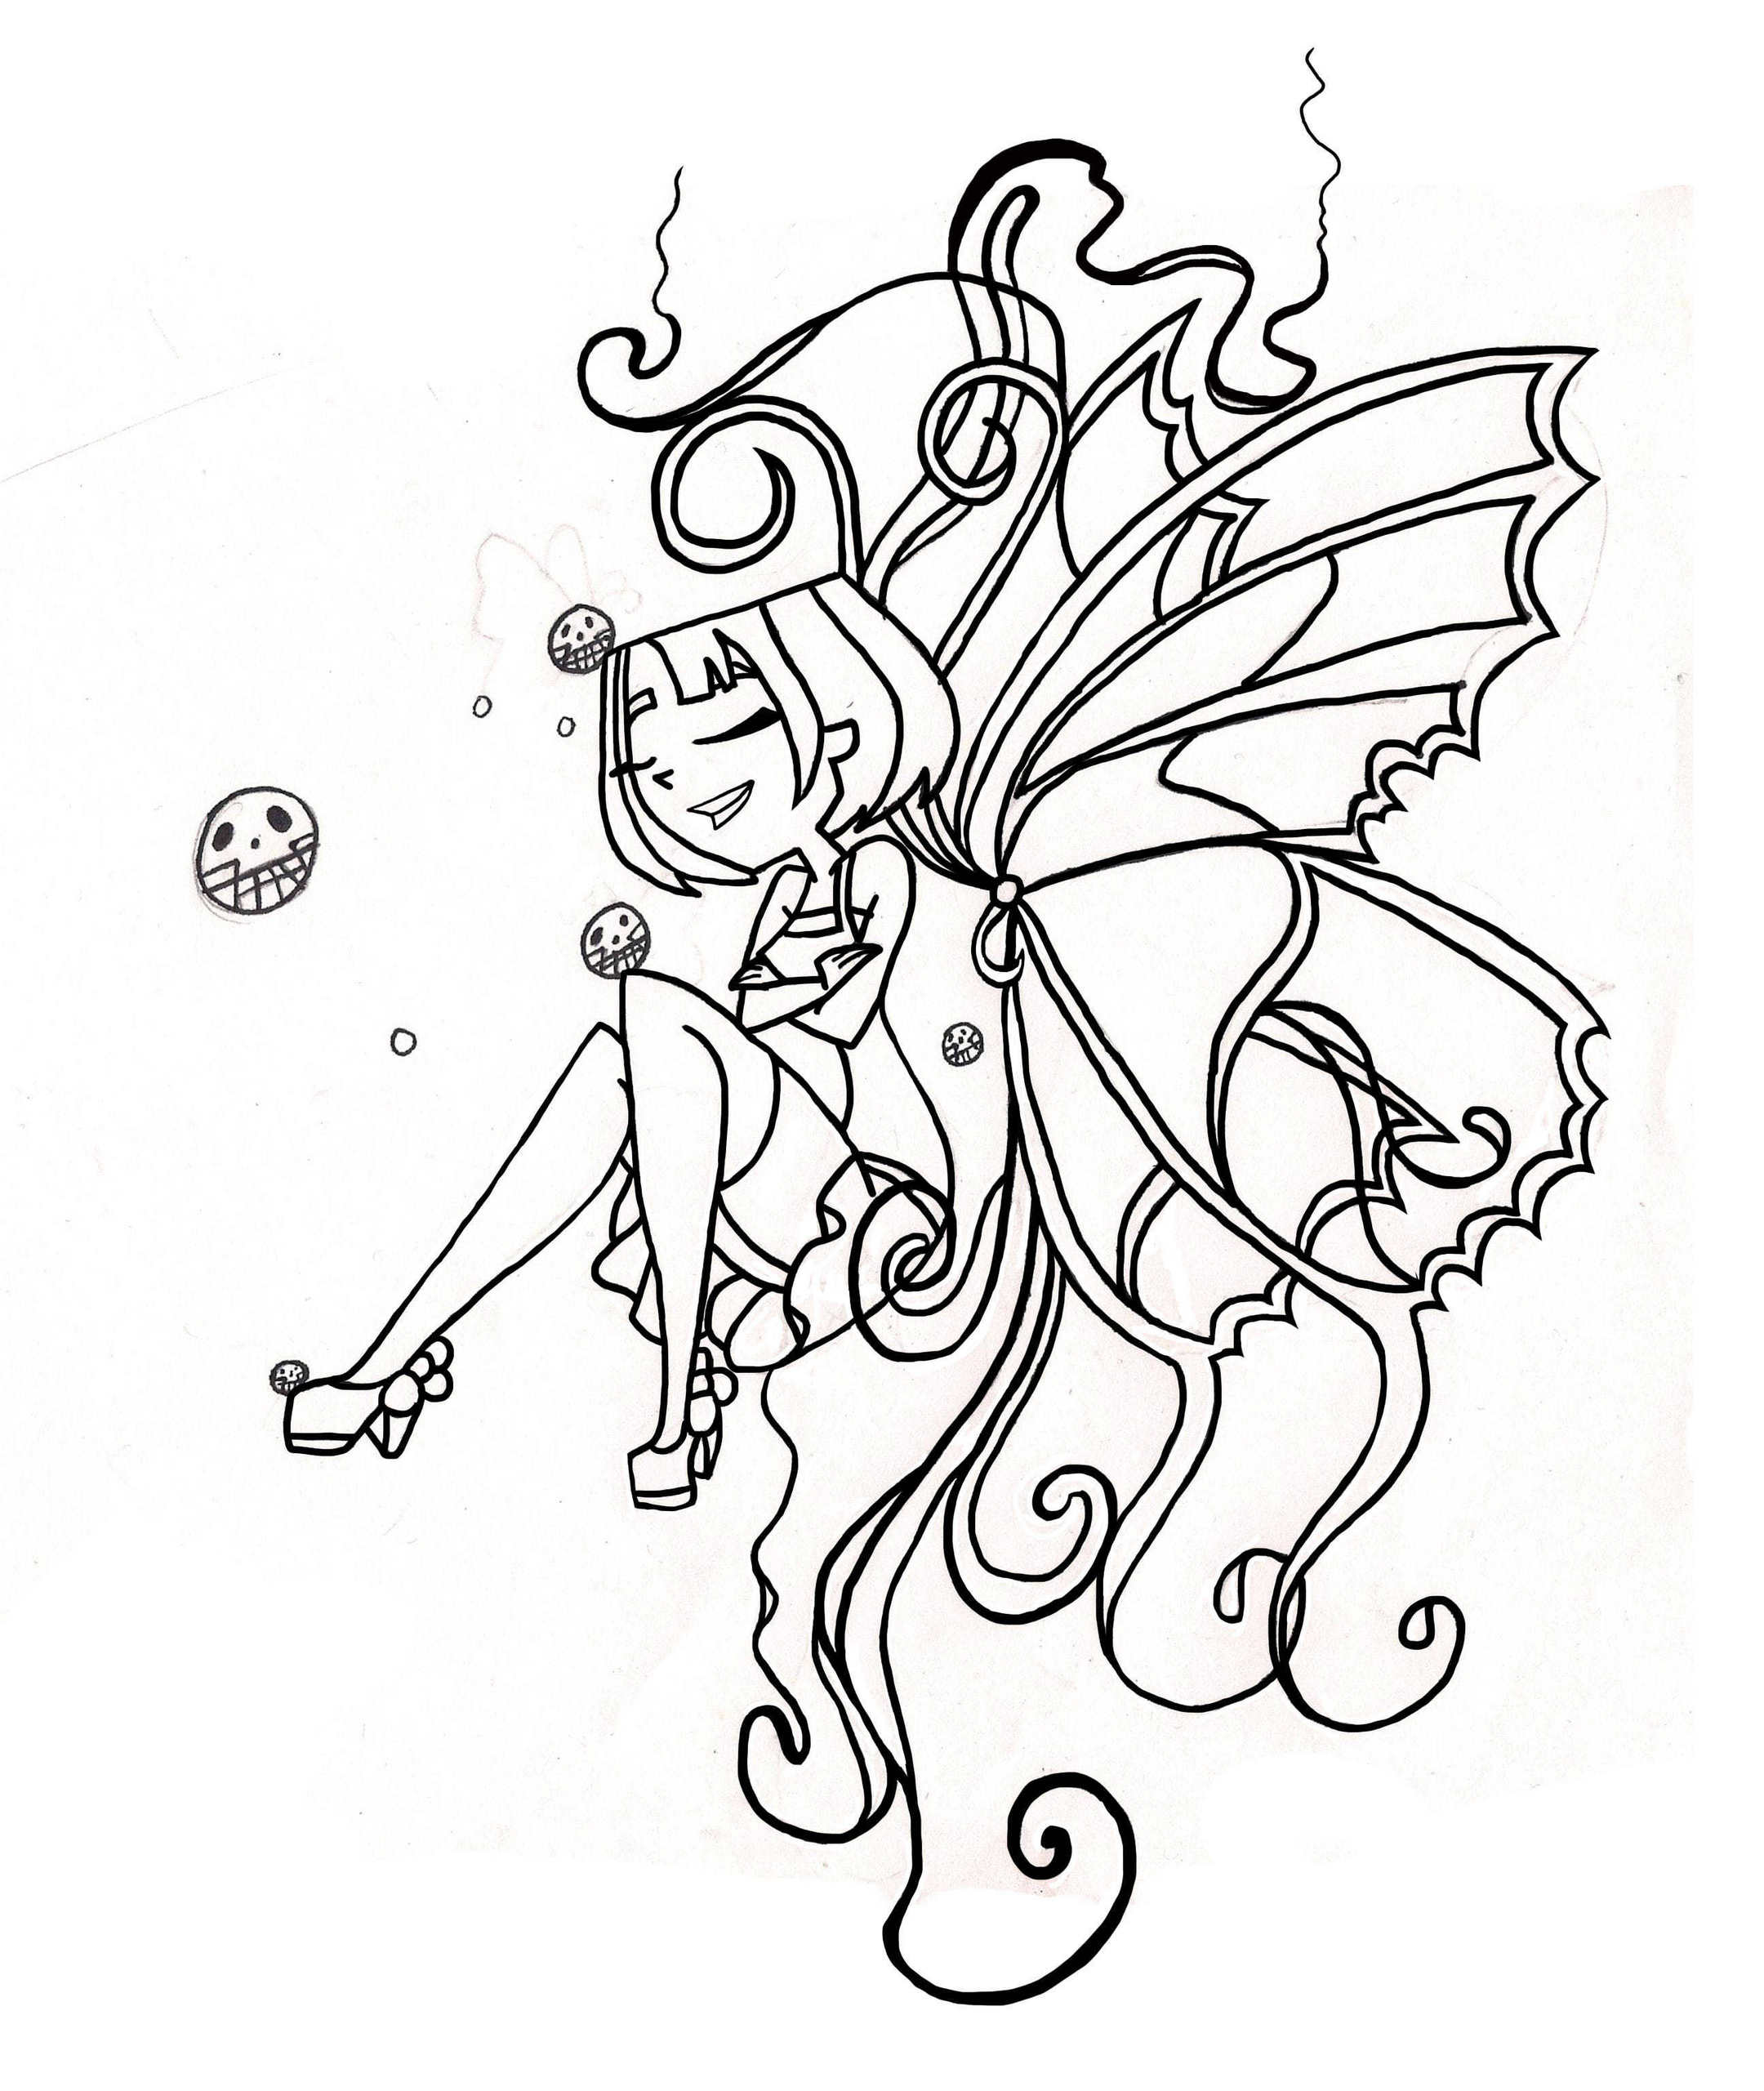 Butterfly Tattoo (Outline) - TDI's GwenxDuncan Fan Art (22799397